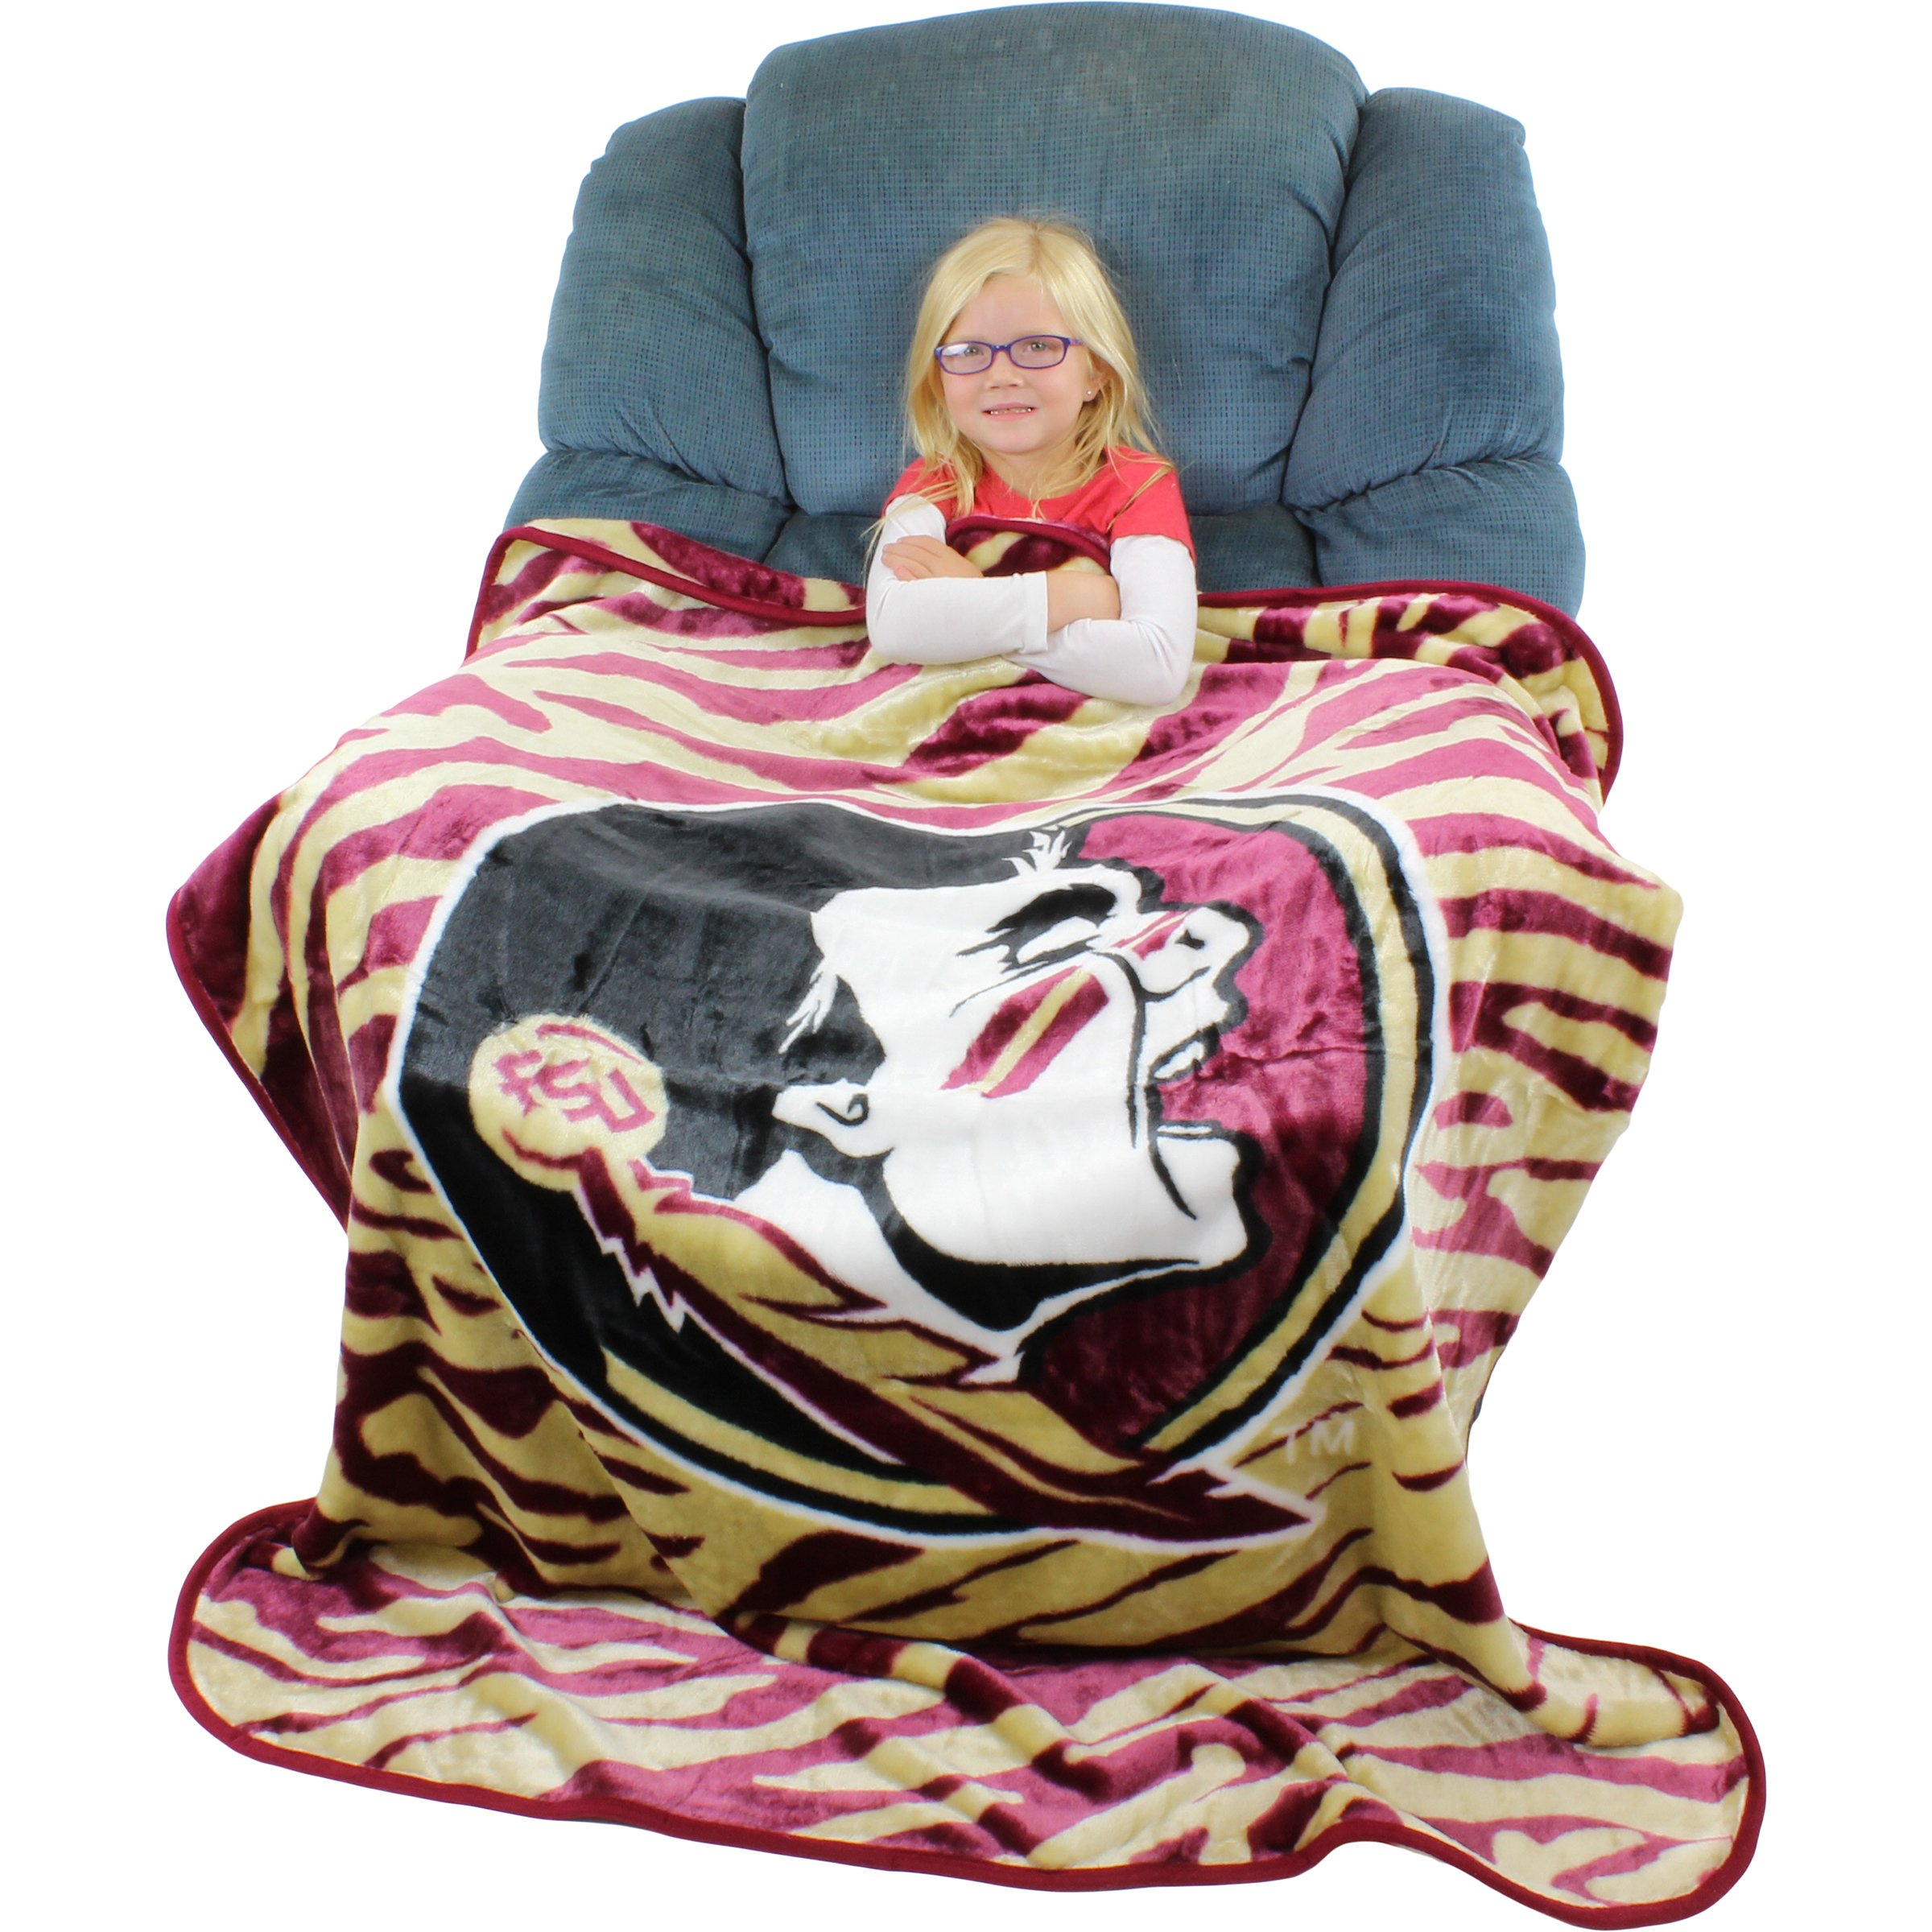 College Covers Raschel Throw Blanket, 50'' x 60'', Florida State Seminoles by College Covers